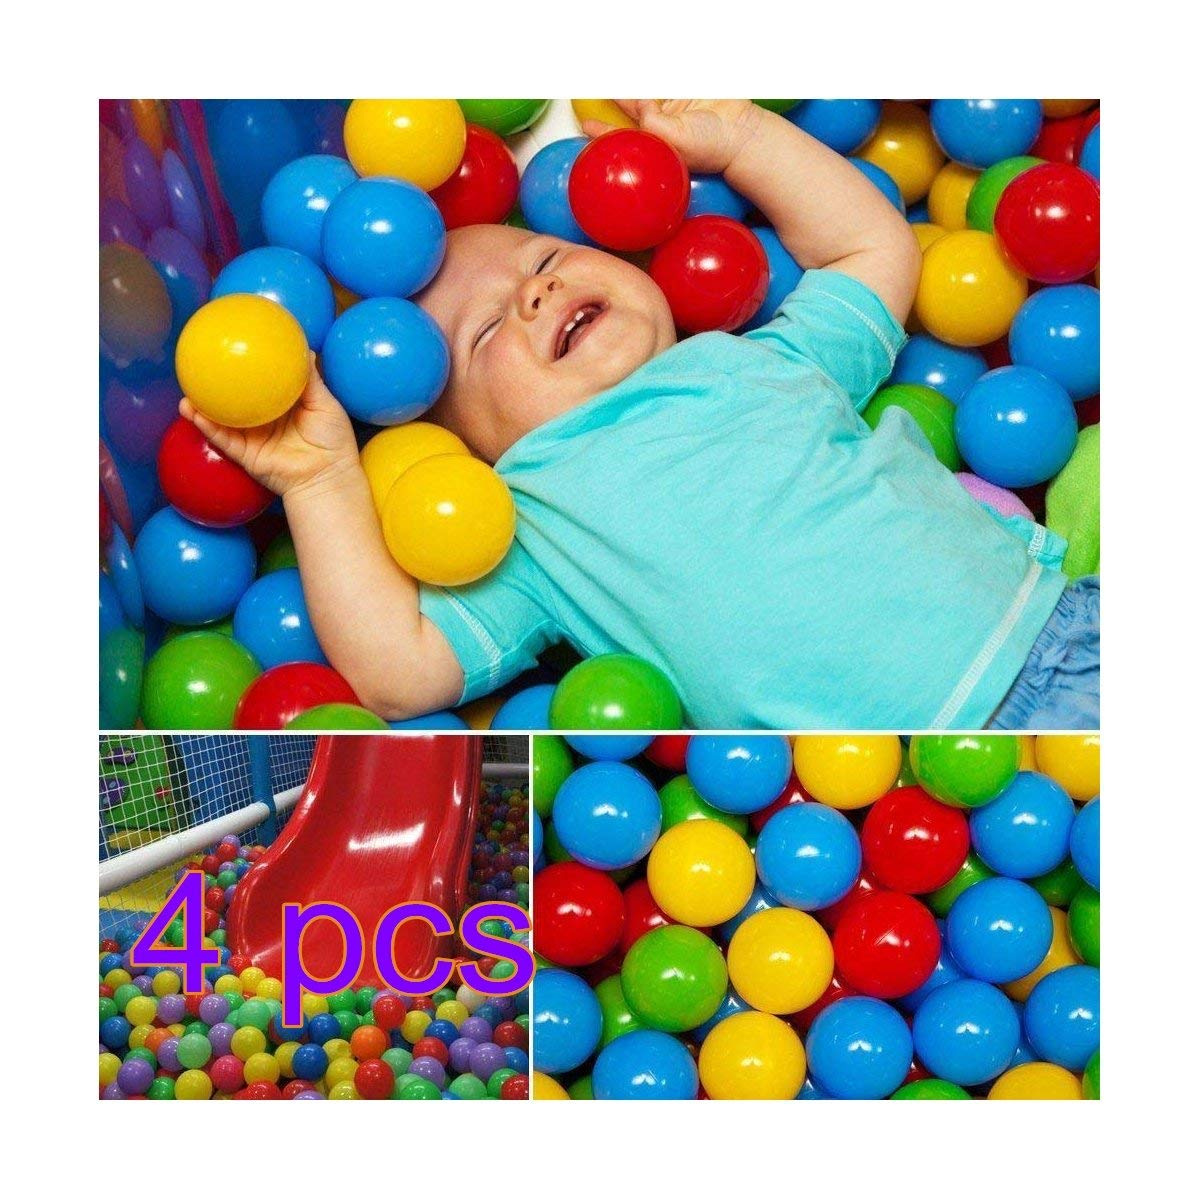 low priced 629a9 9a404 Buy Baby Kiddie Fabric Play Game Pit Ball Pool Children ...